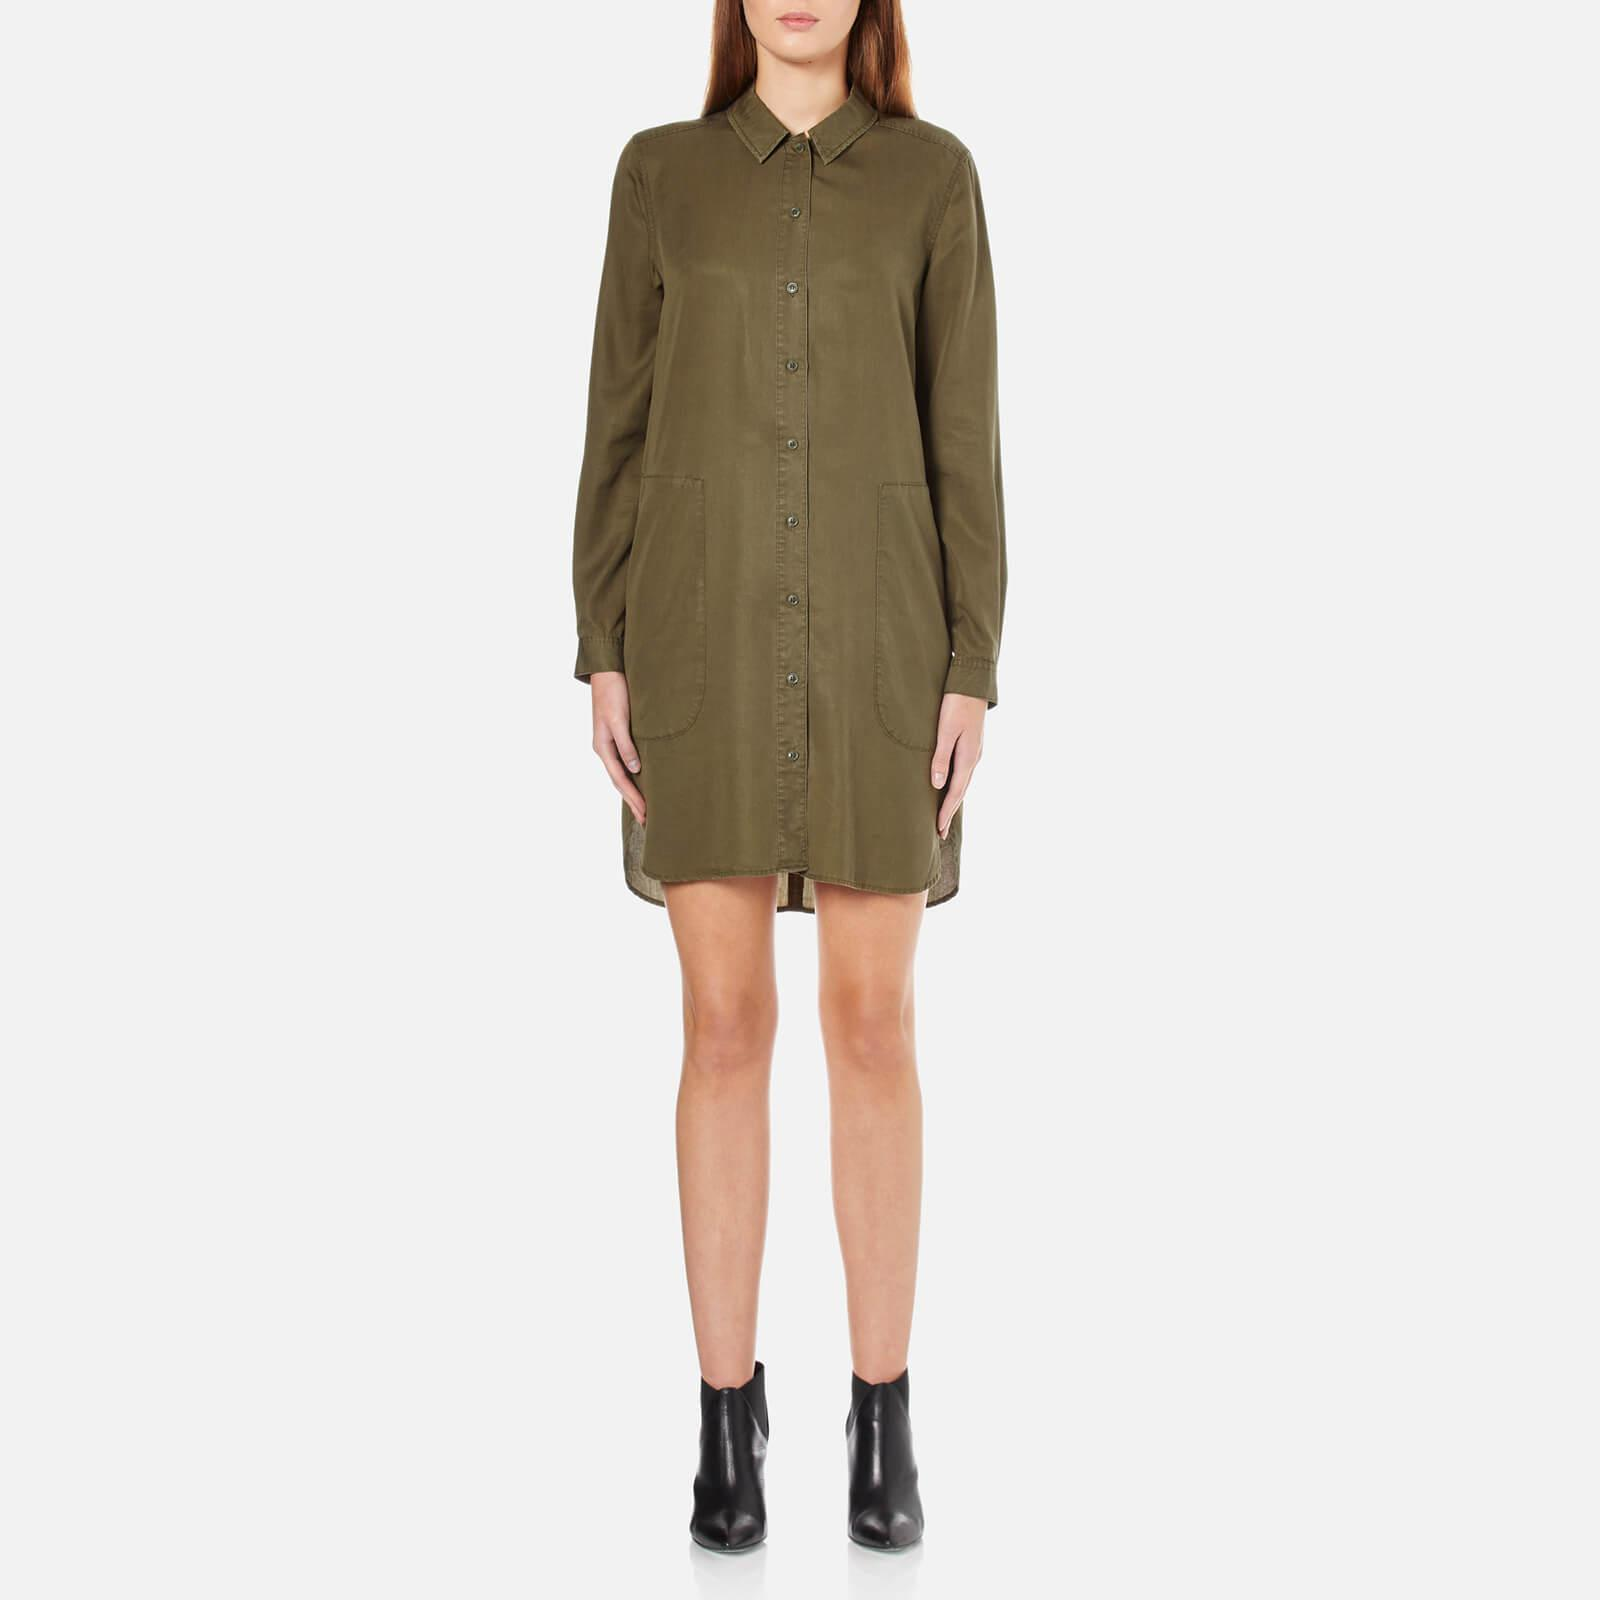 Lyst french connection military tencel shirt dress in green for French connection shirt dress